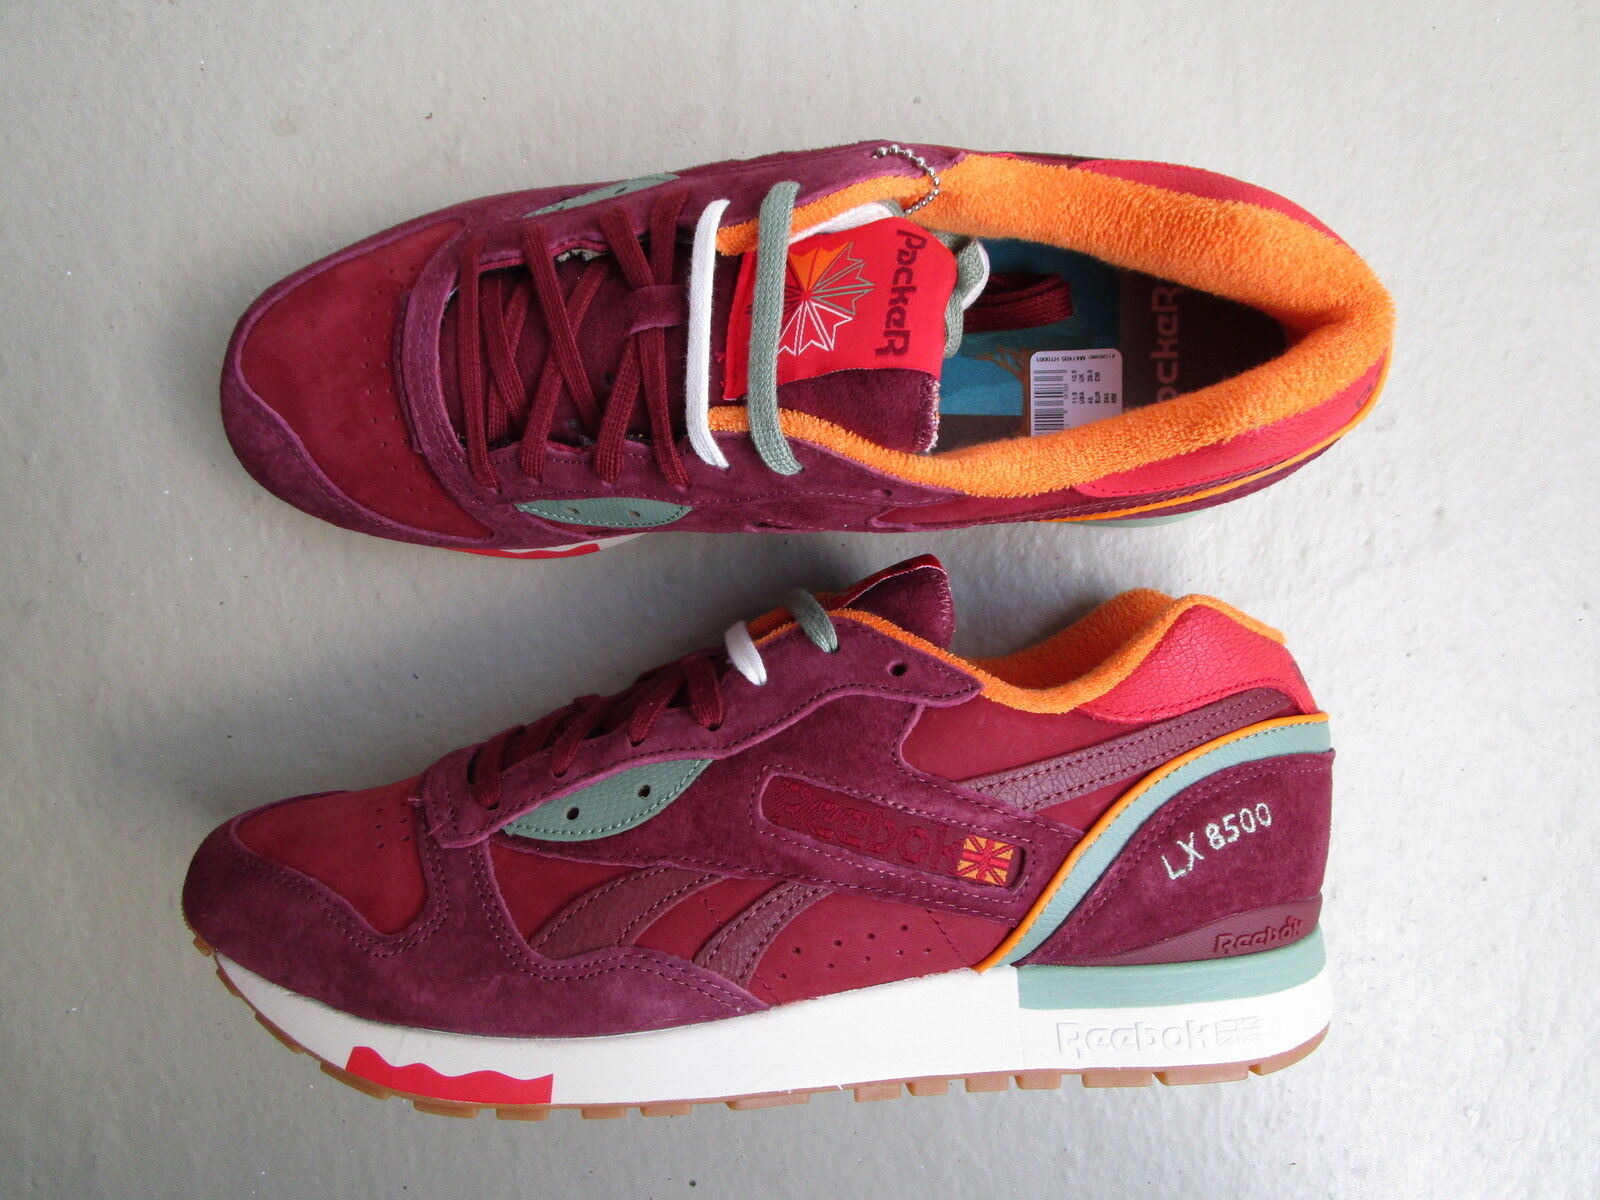 Packer Shoes X Reebok LX 8500 45 'Autumn' Maroon/Mulberry Red/Green